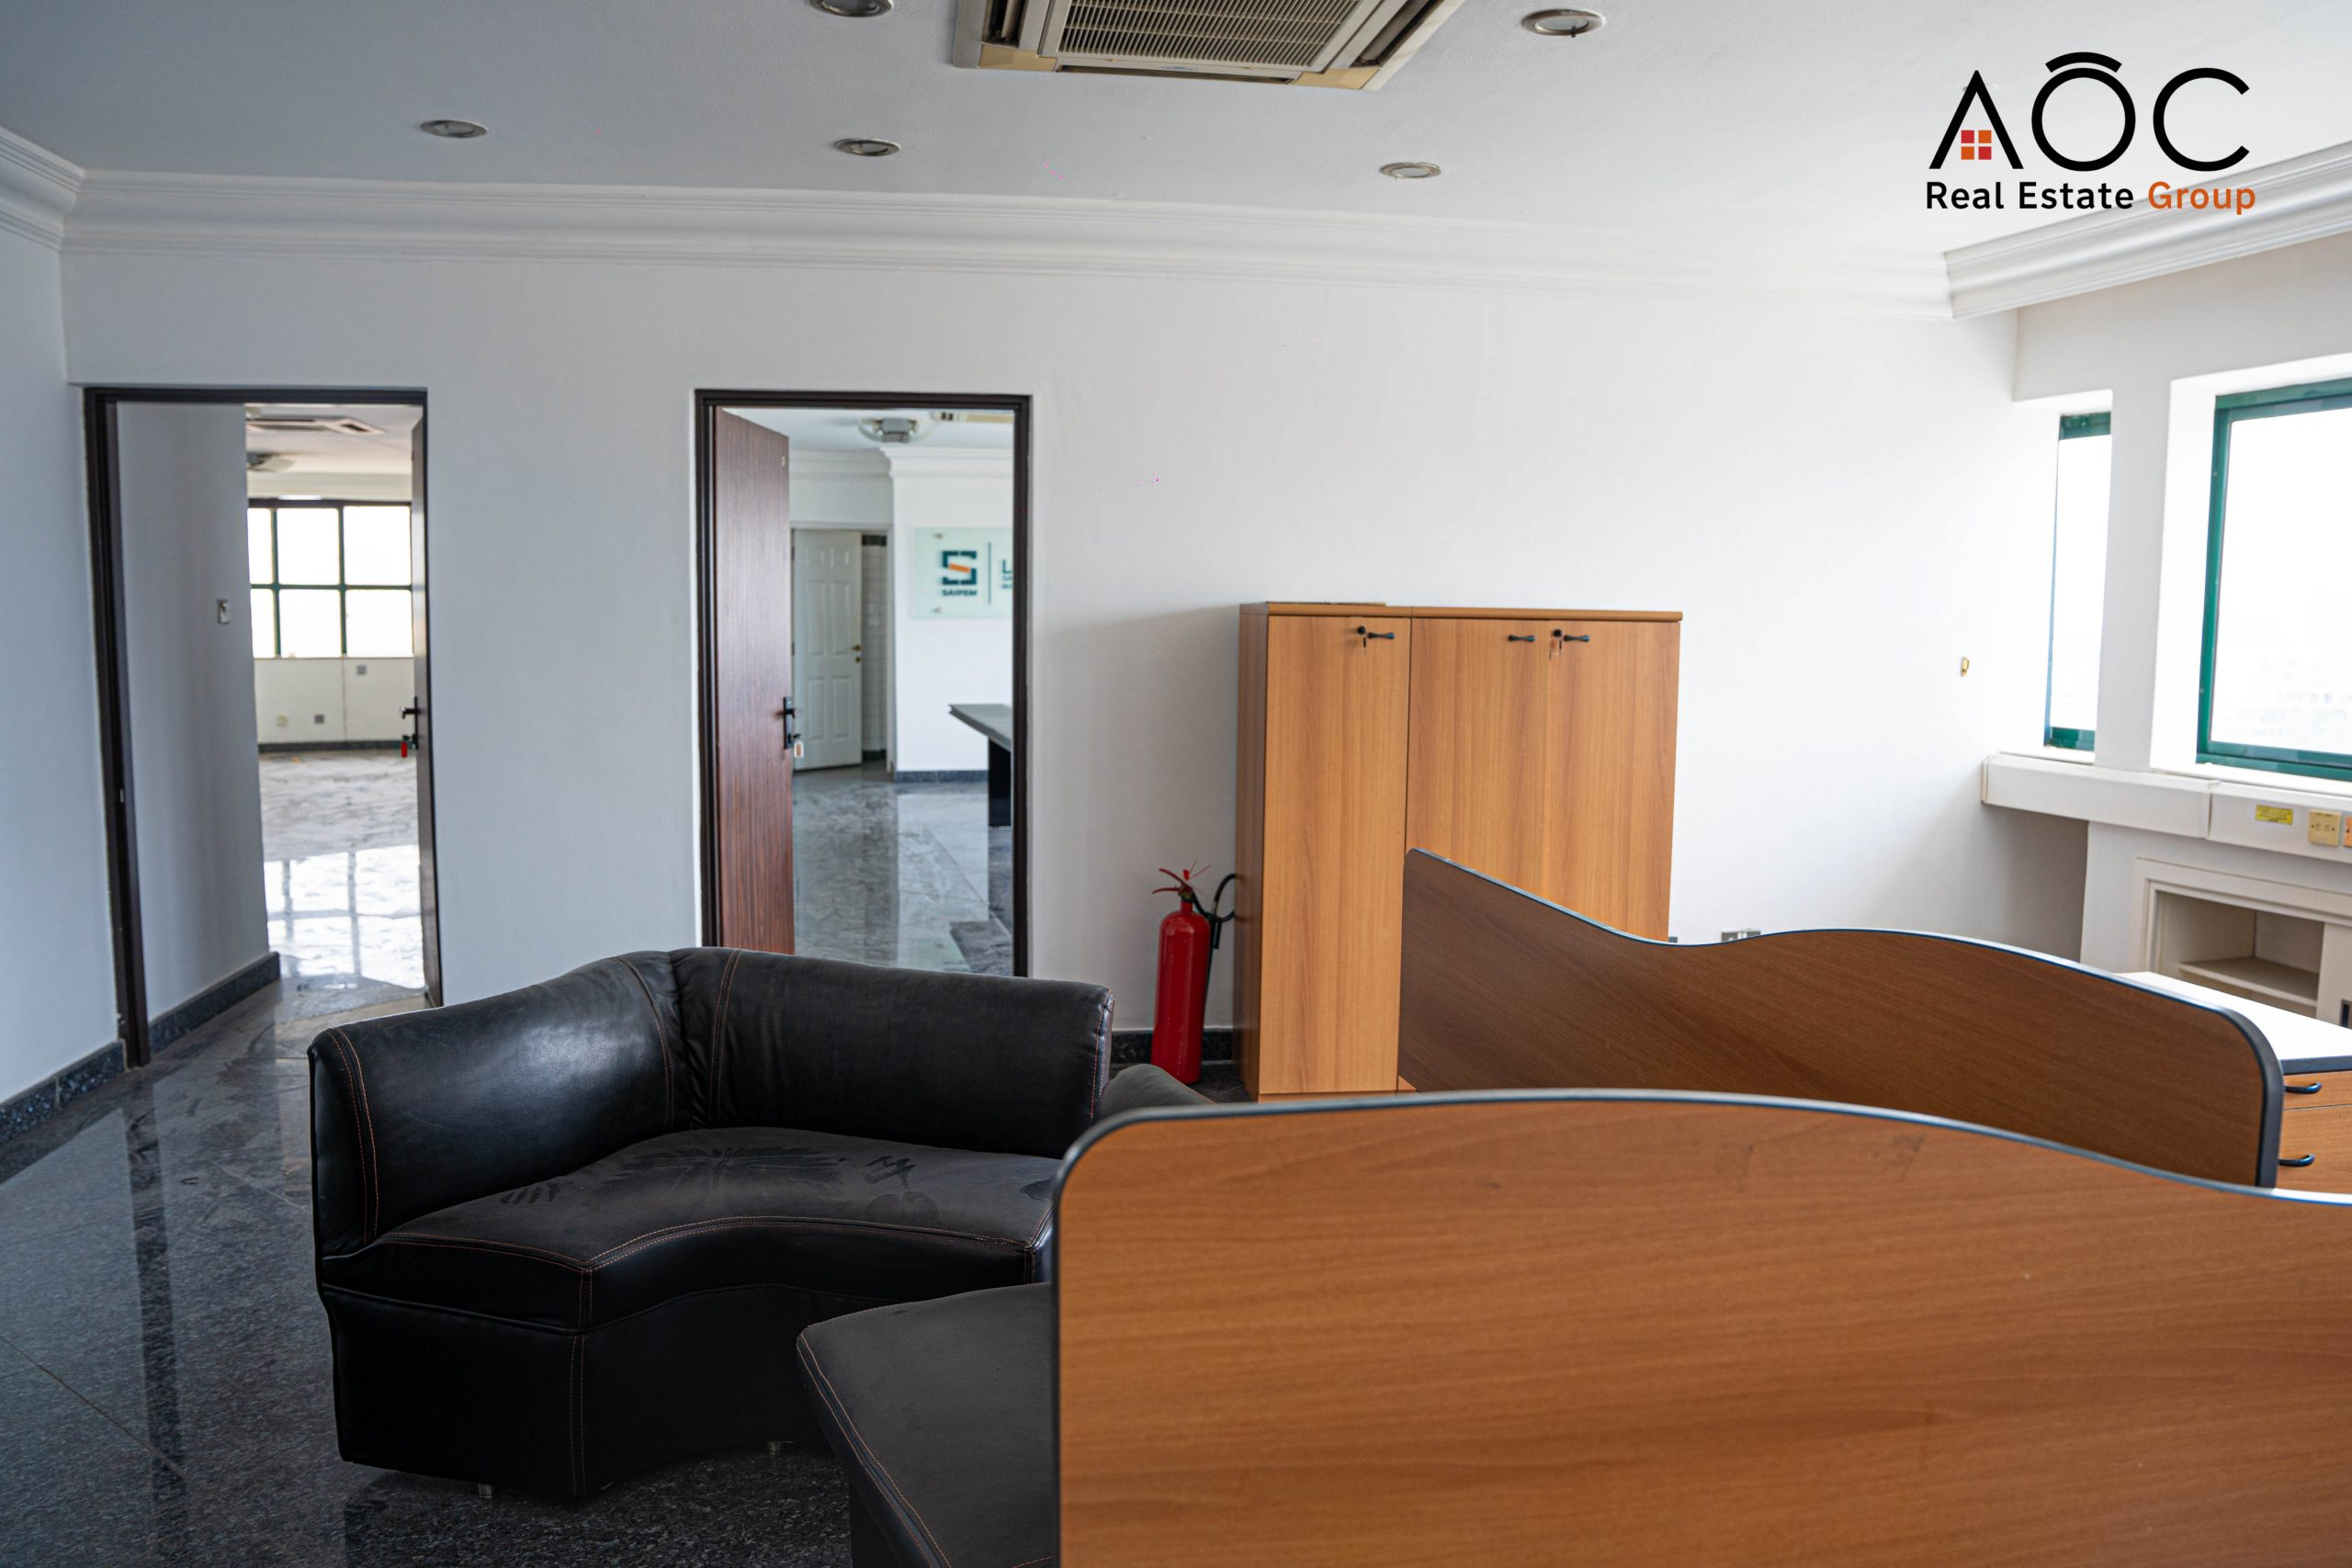 Executive Penthouse Office Space In High Rise Office Building